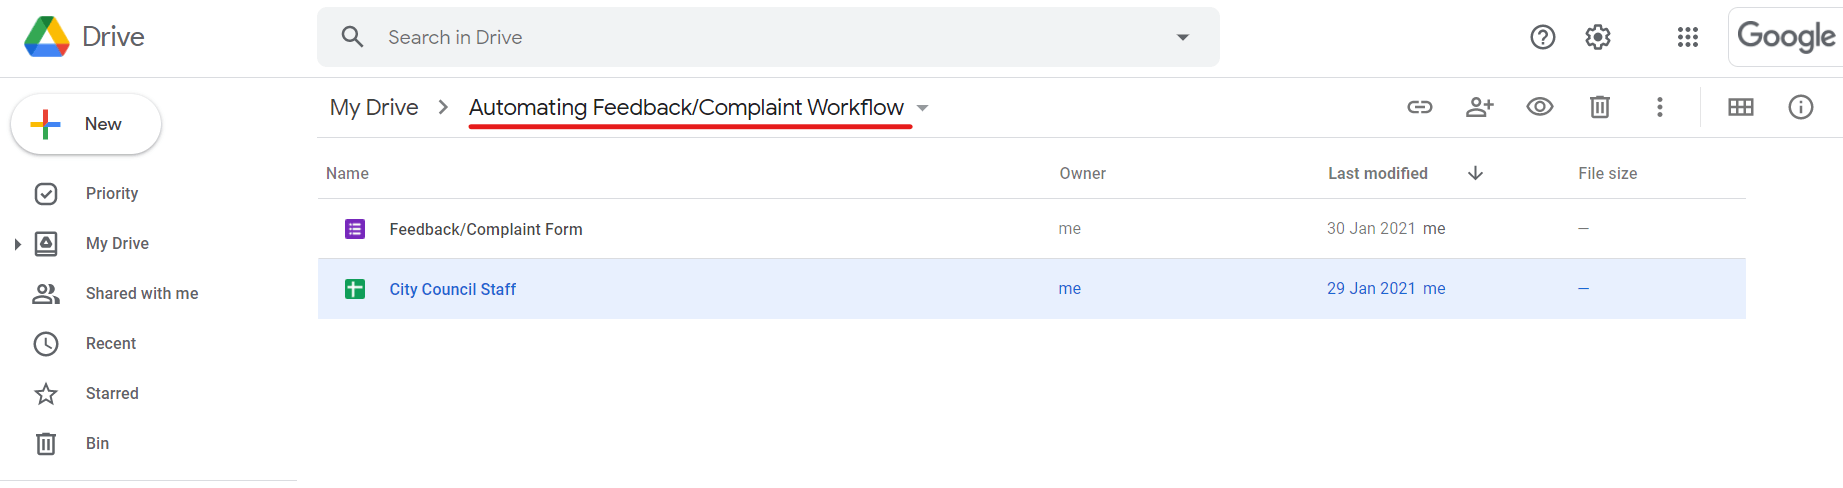 Automating Feedback/Complaint Workflow Step 01.3. Assigning a specific folder within your Google Drive.